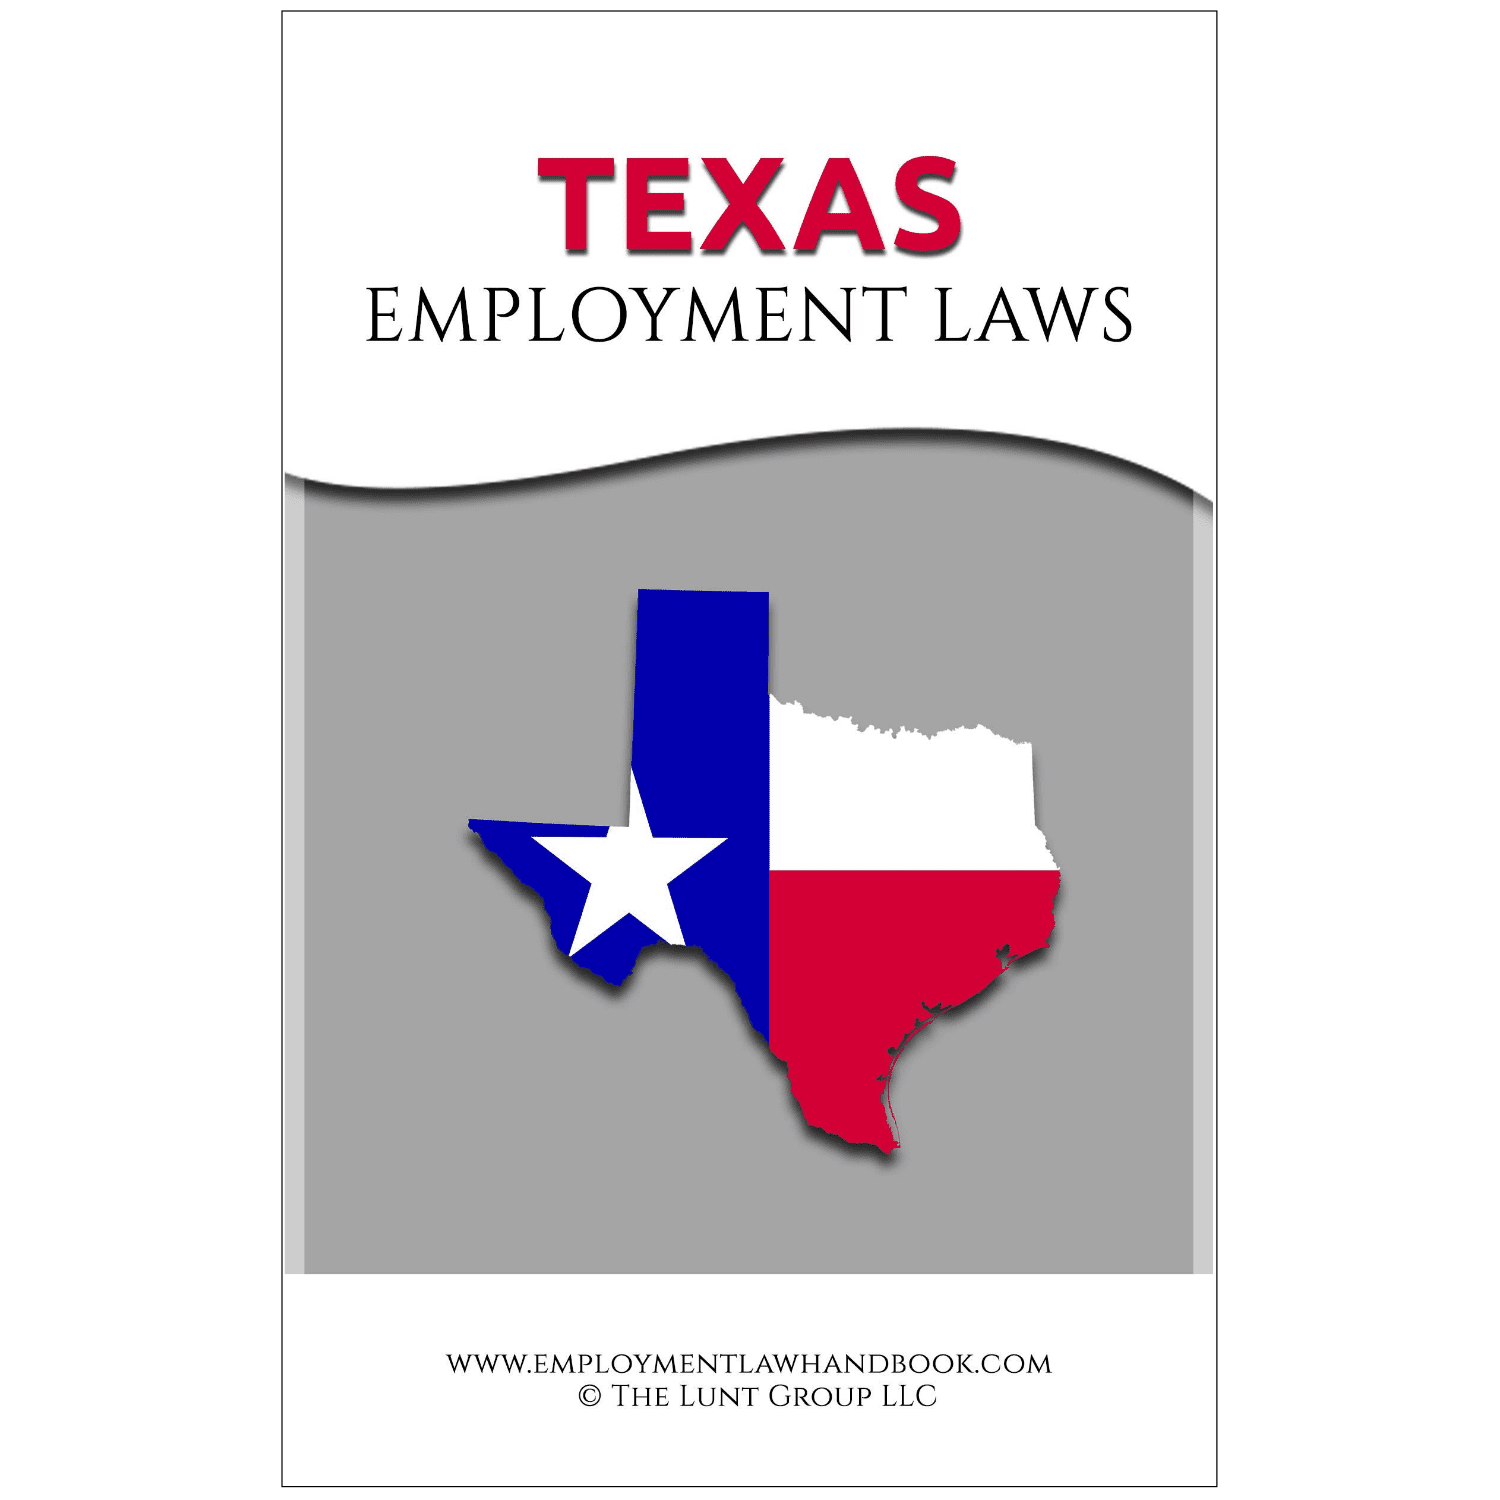 Legal dating laws in texas